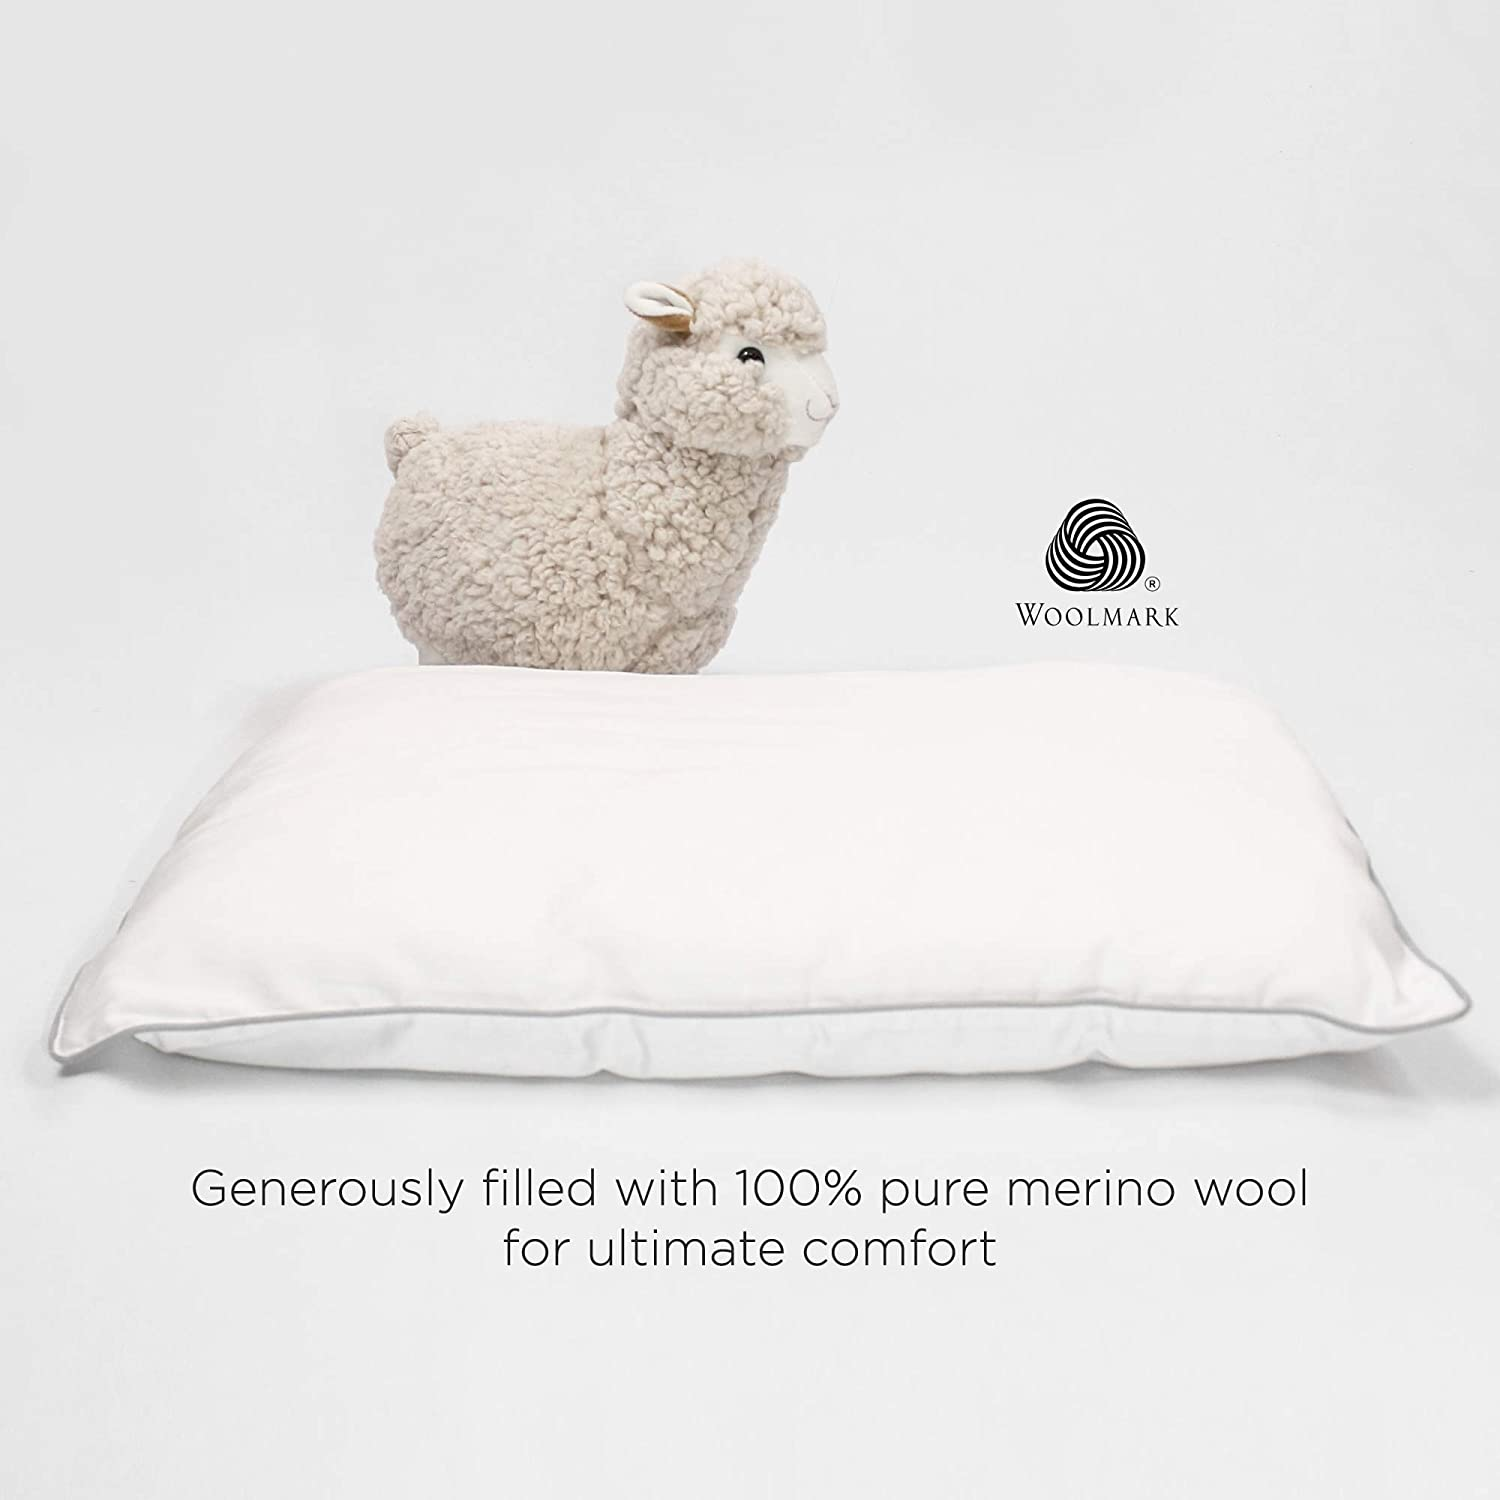 All Natural Kids Pillow Oeko TEX 100 Certified 14x19 Wool Toddler Pillow Machine Washable